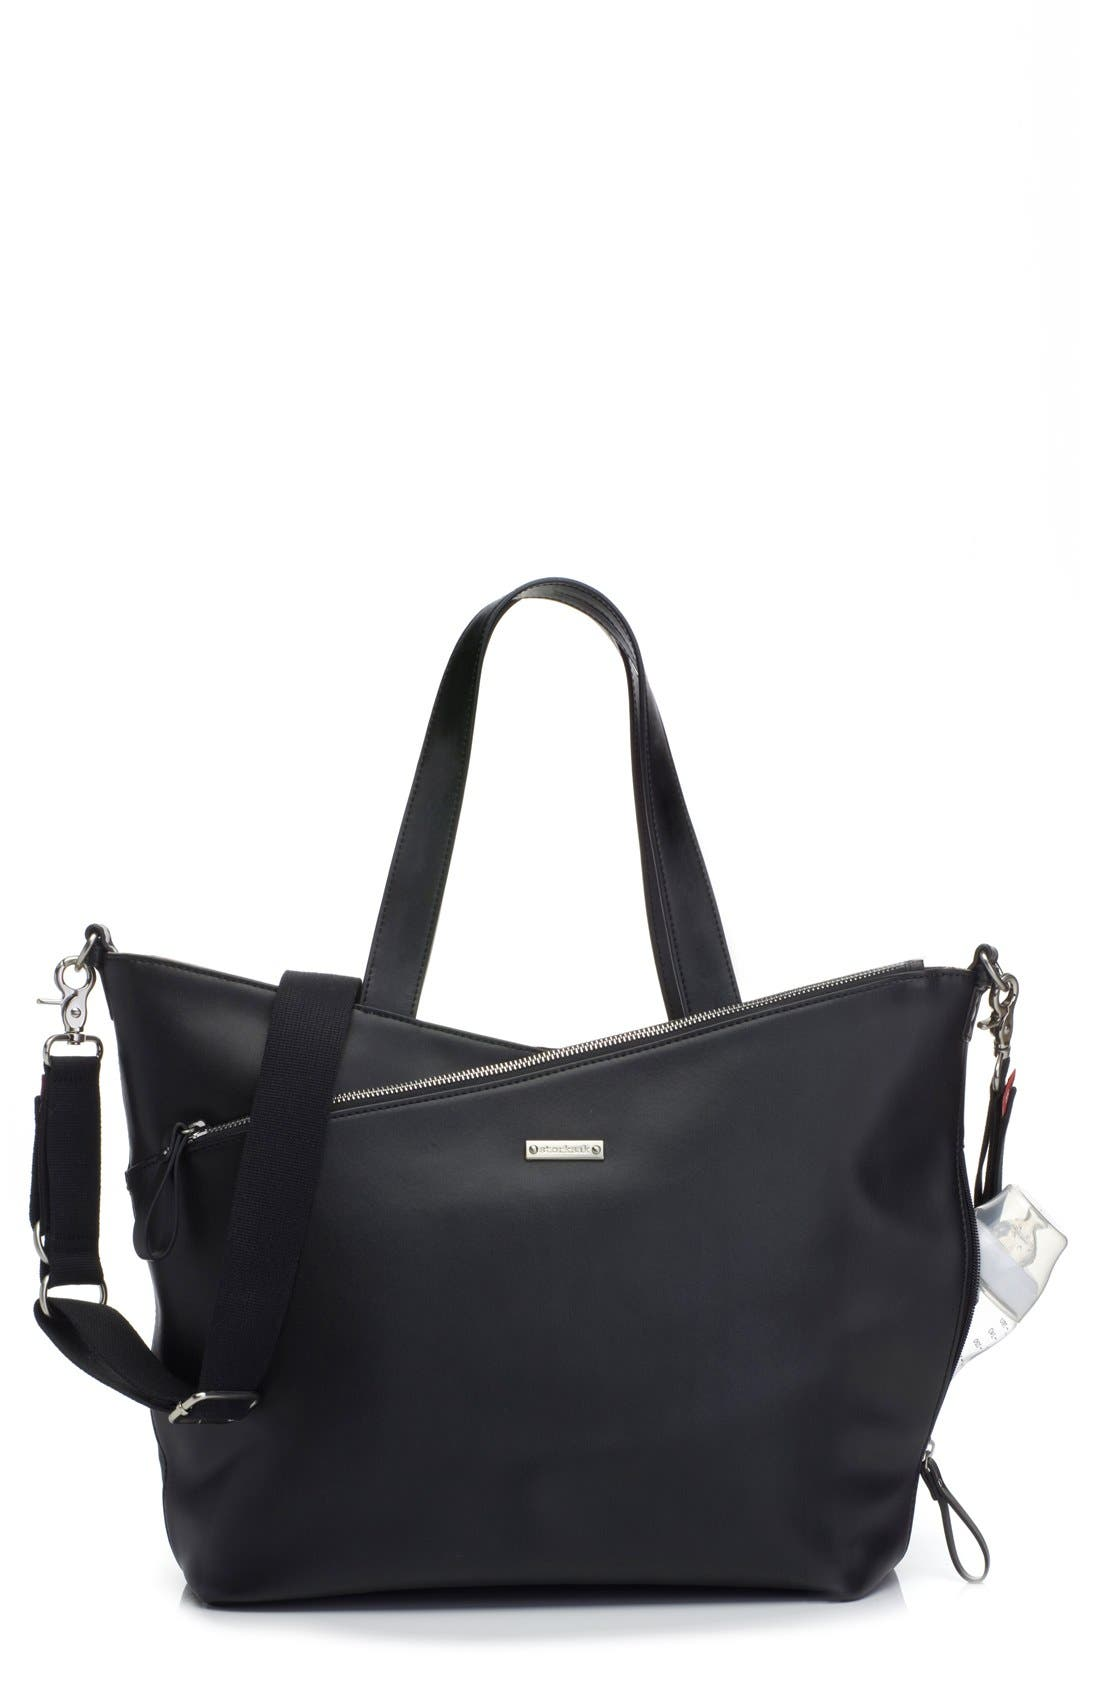 Main Image - Storksak 'Lucinda' Diaper Bag Leather Tote